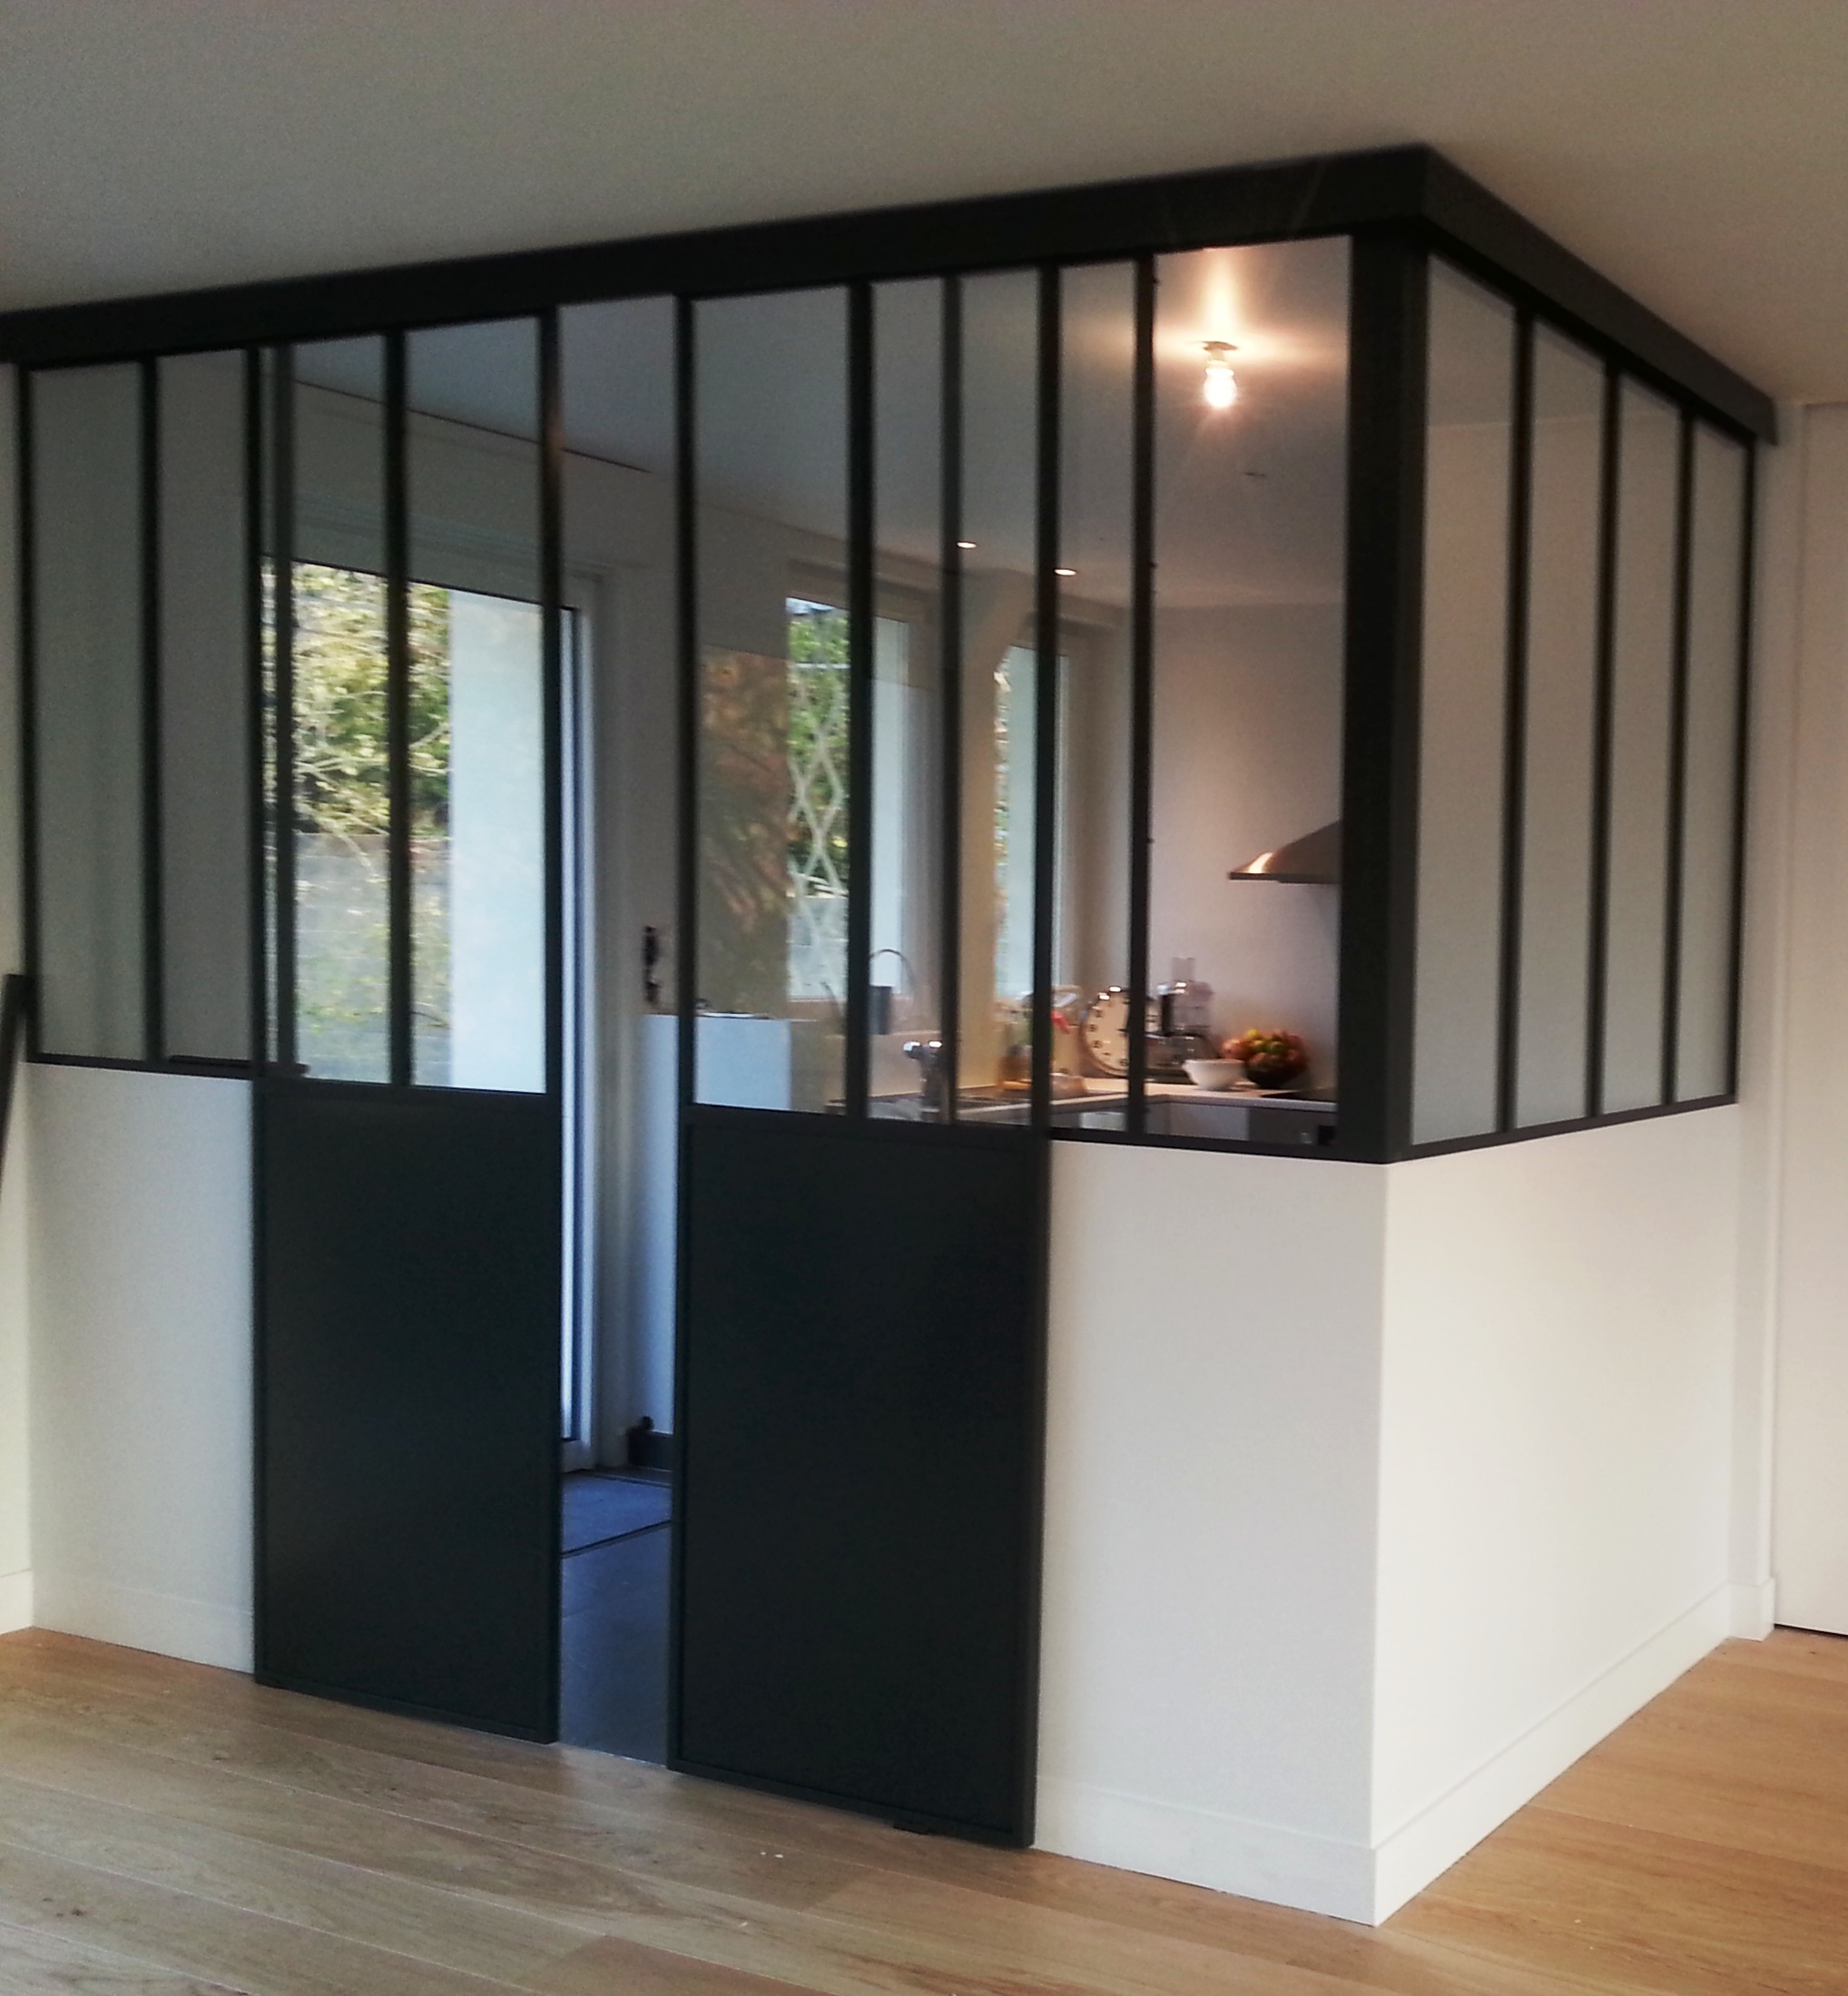 Installation thermique dimension porte coulissante for Dimension porte interieur 83